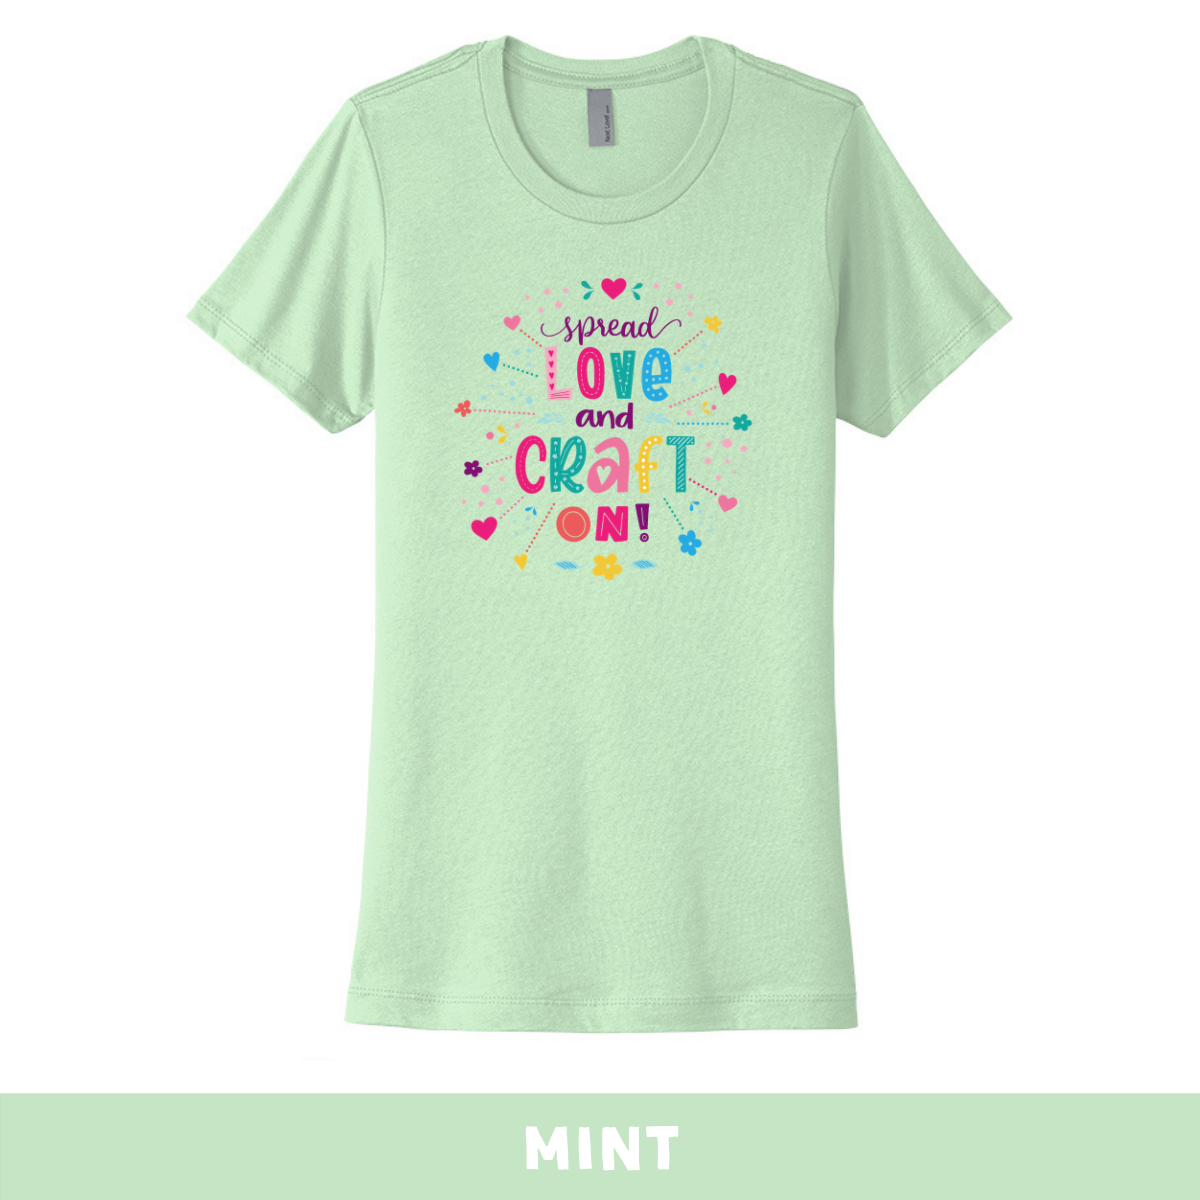 Mint - Crew Neck Boyfriend Tee - Spread Love and Craft On